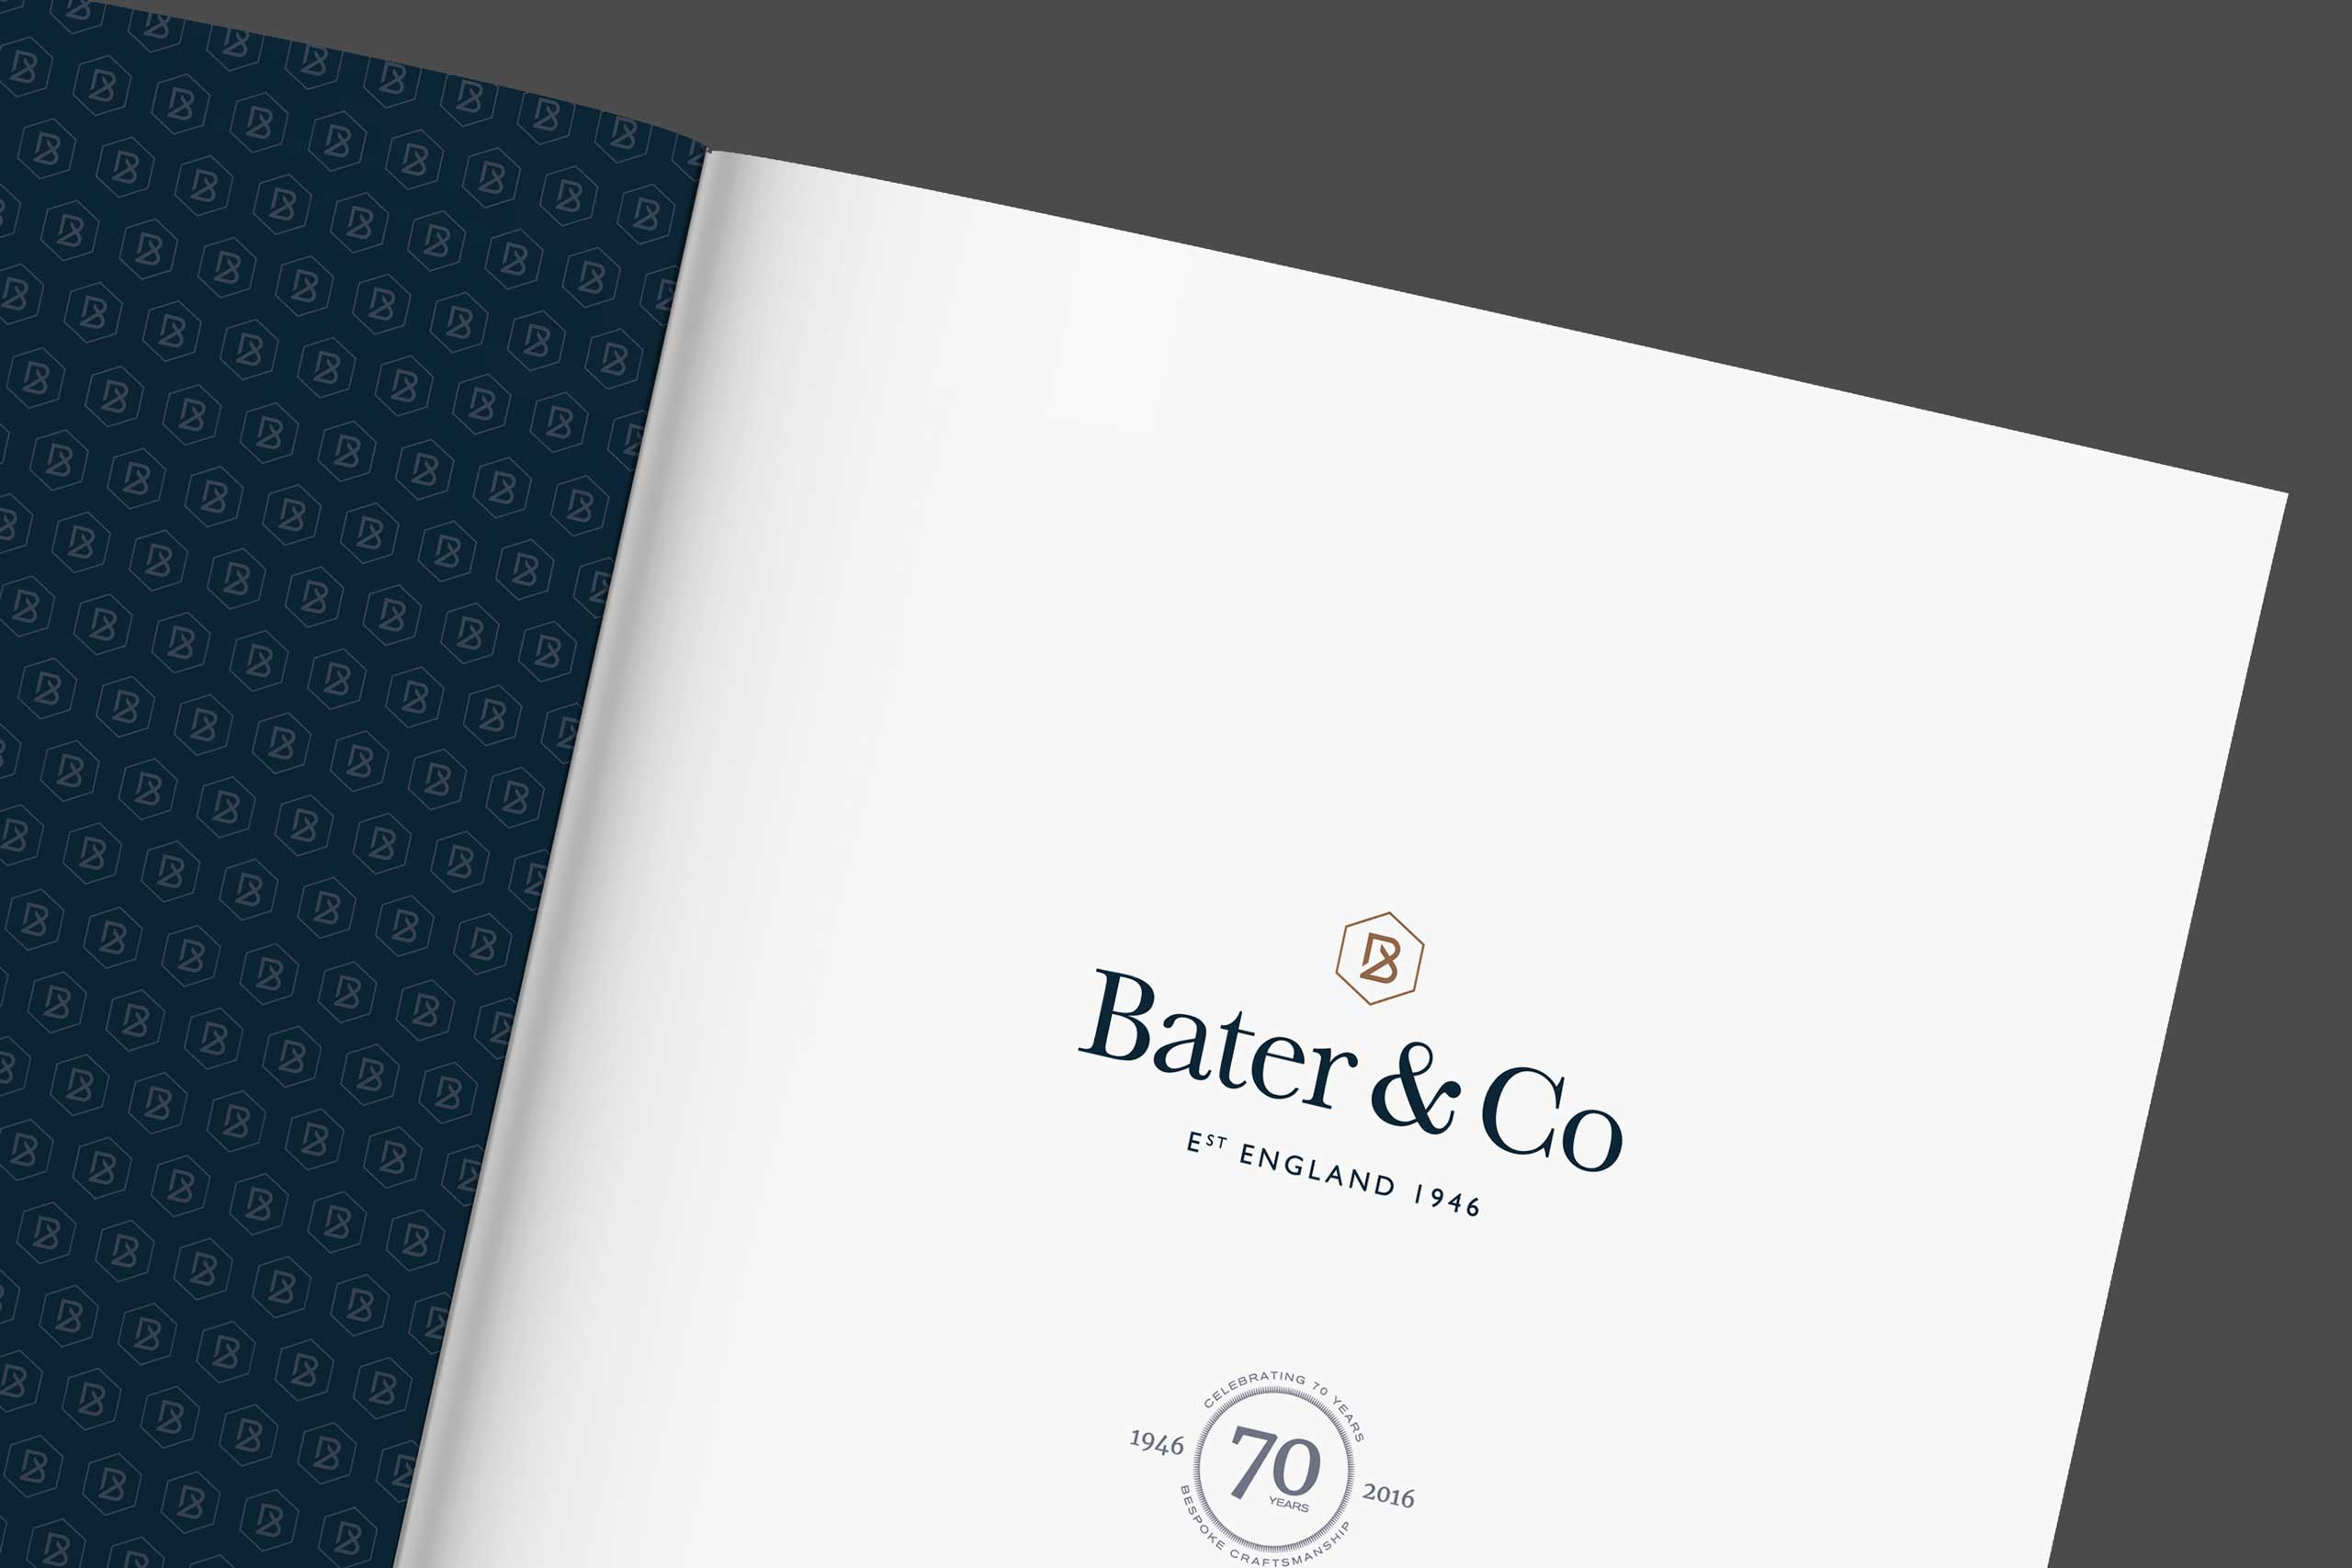 Bater & Co brochure inside cover bluxury brand marketing